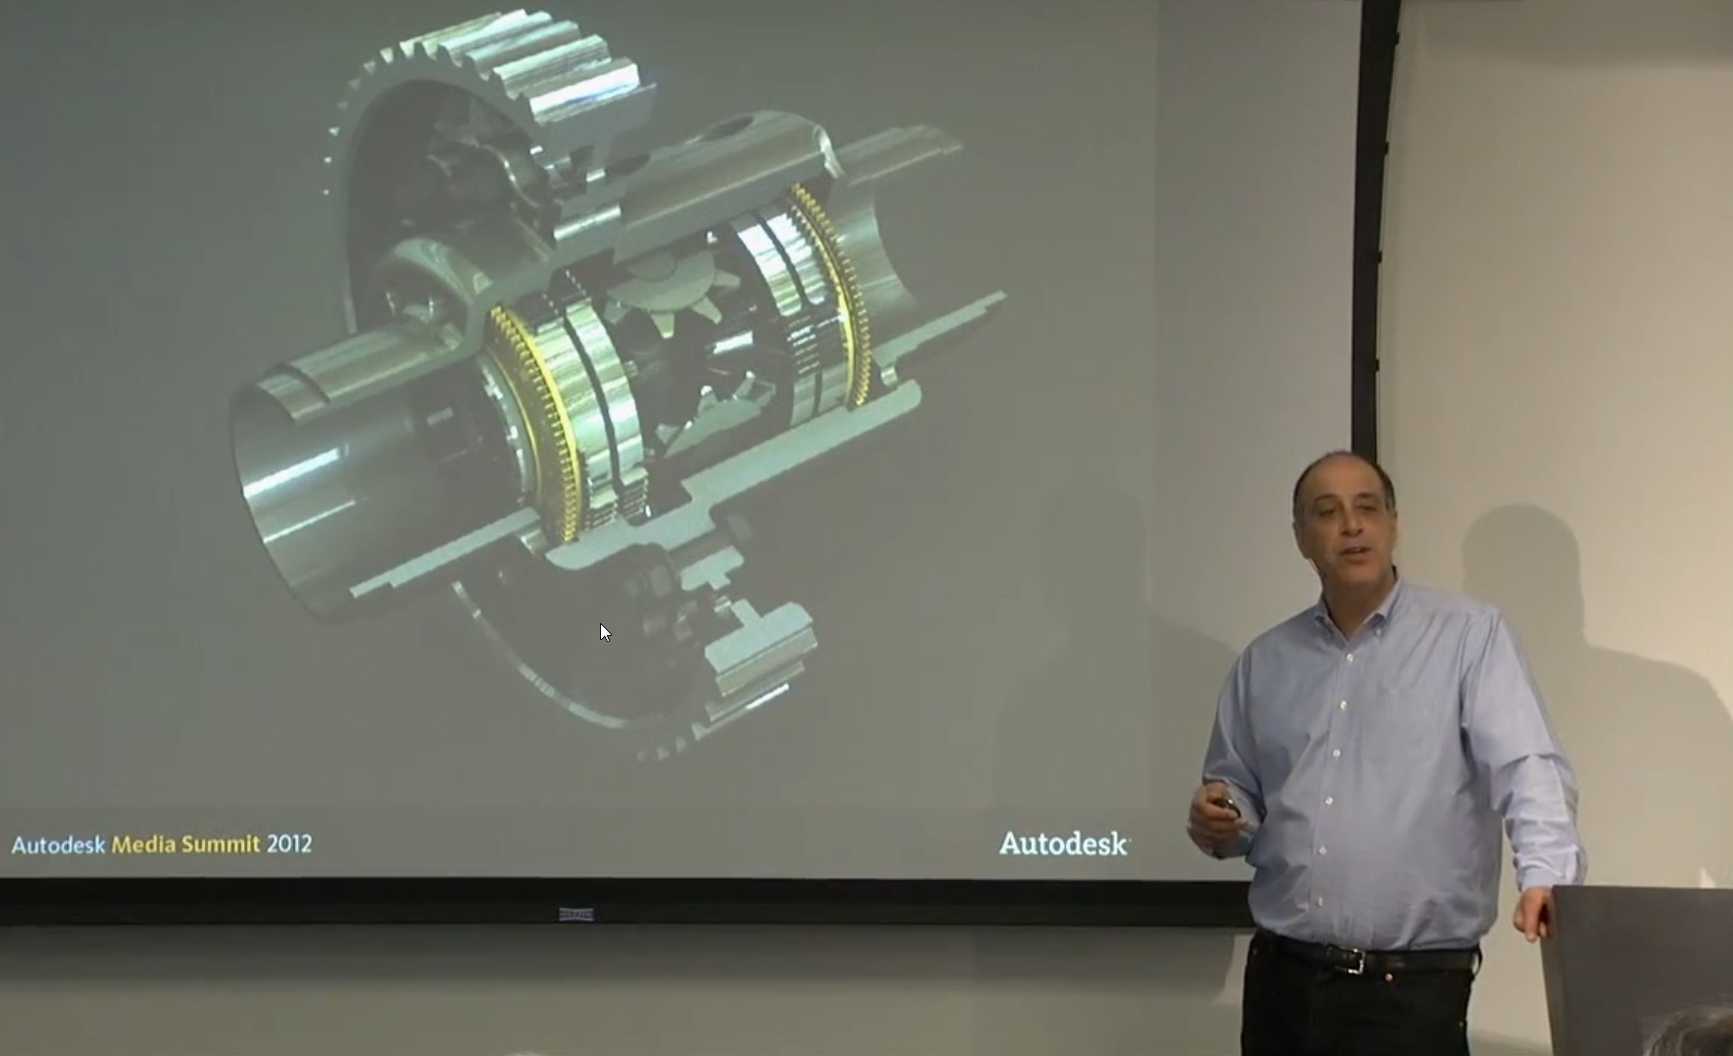 Autodesk Media Summit 2012 Videos Part 1